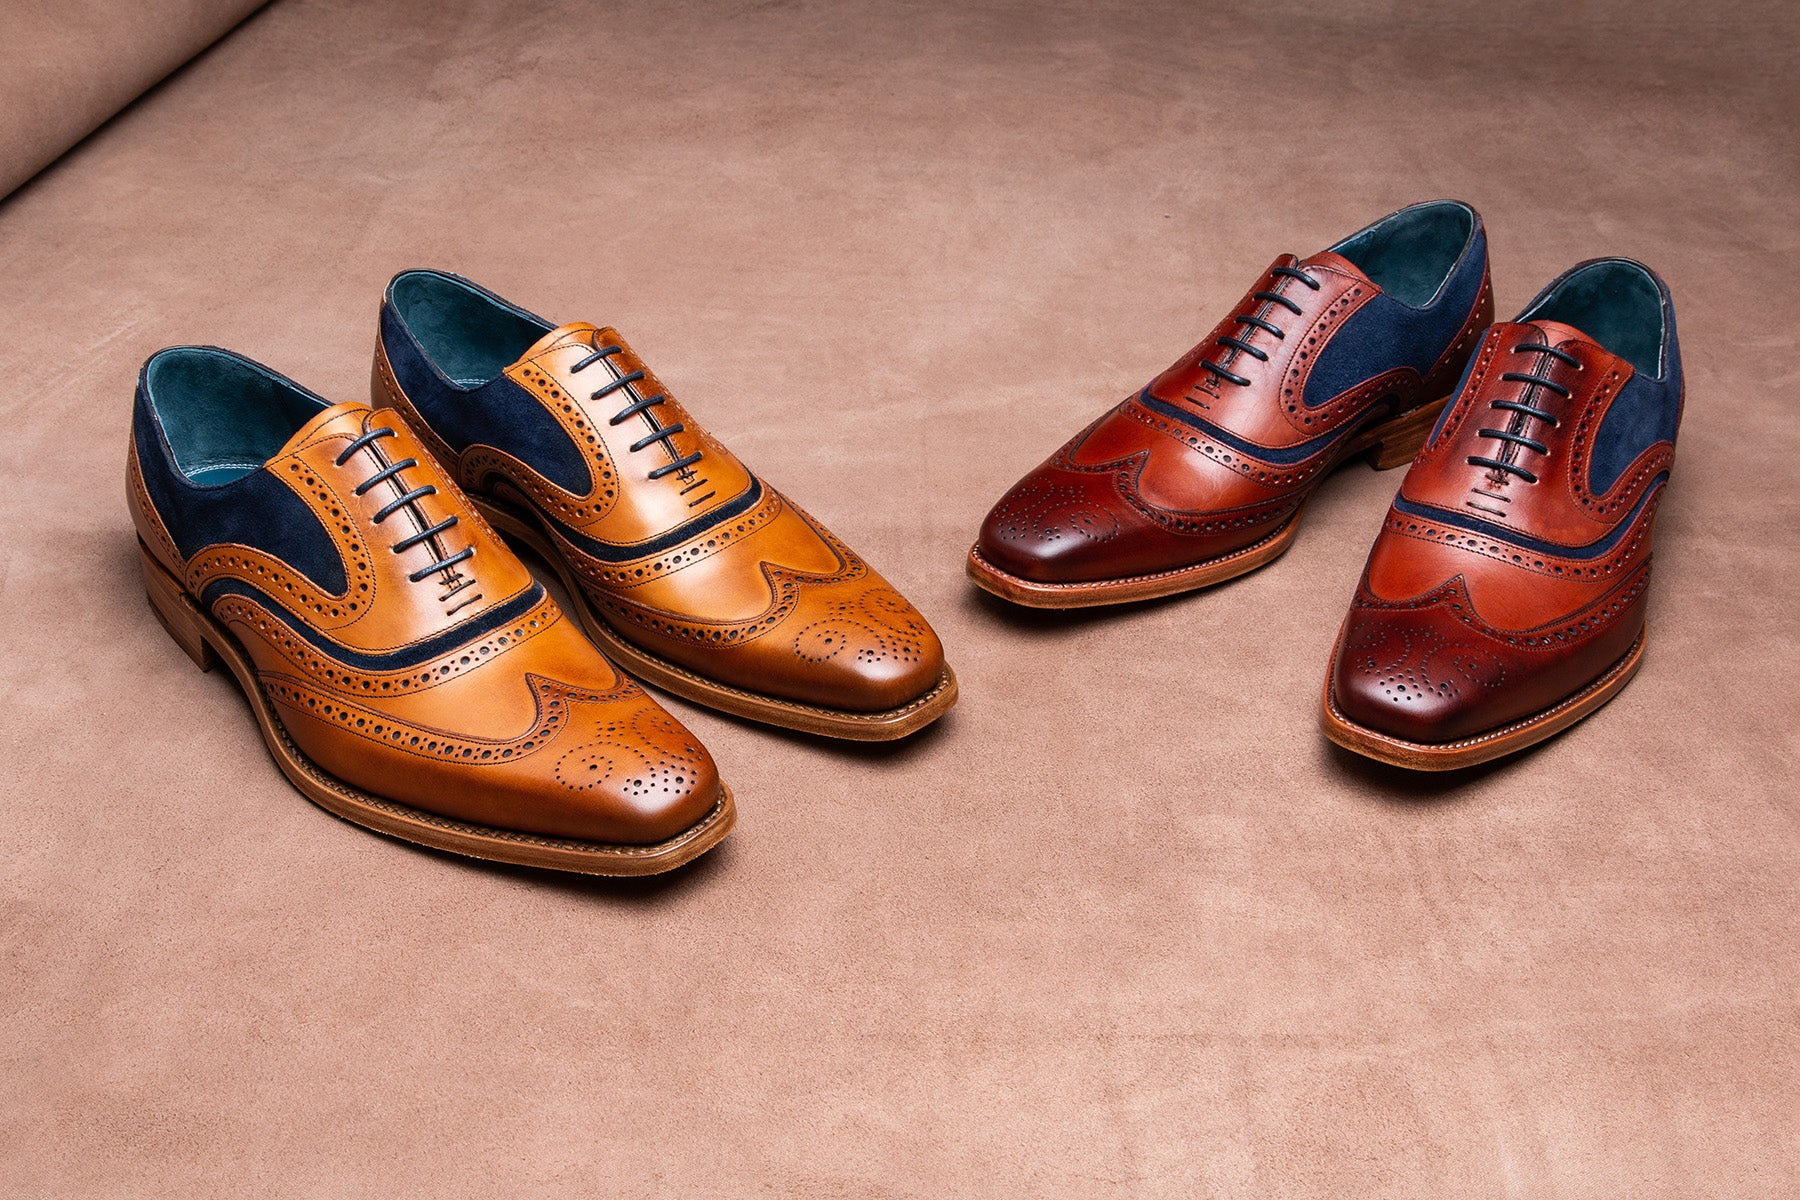 McClean - Men's Handmade Leather Brogues by Barker